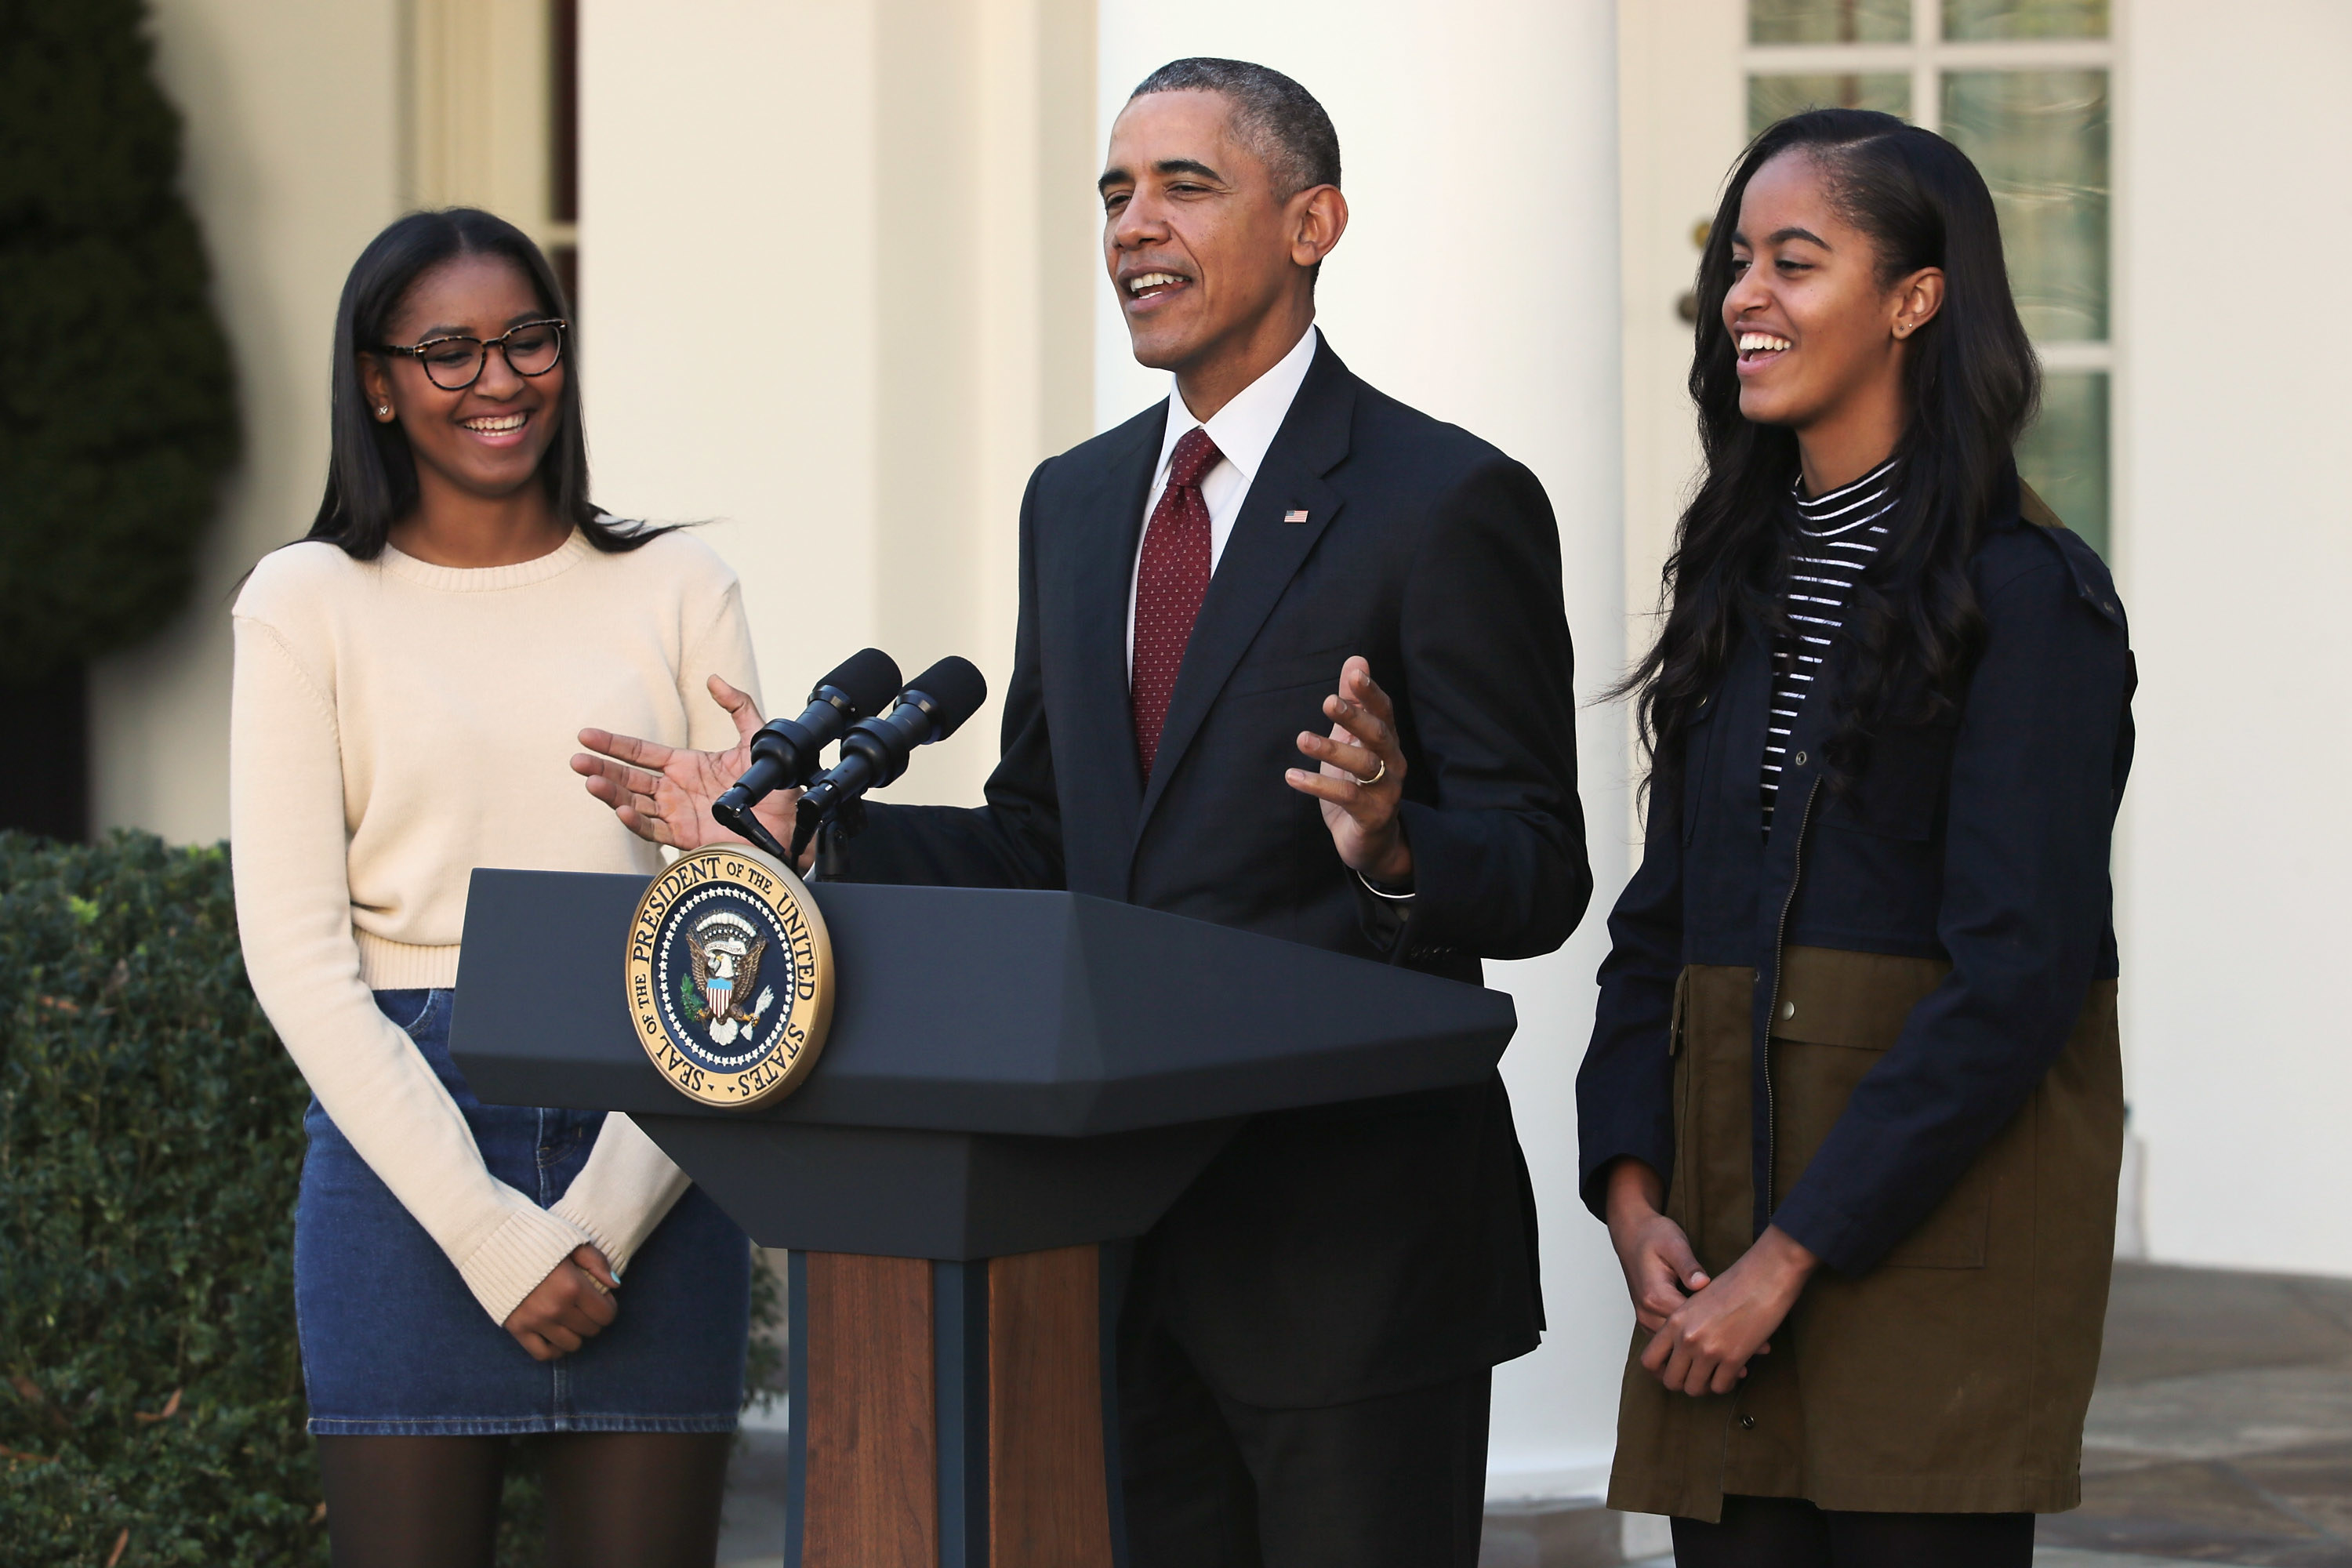 President Obama delivers remarks with his daughters Sasha and Malia during the annual turkey pardoning ceremony in 2015